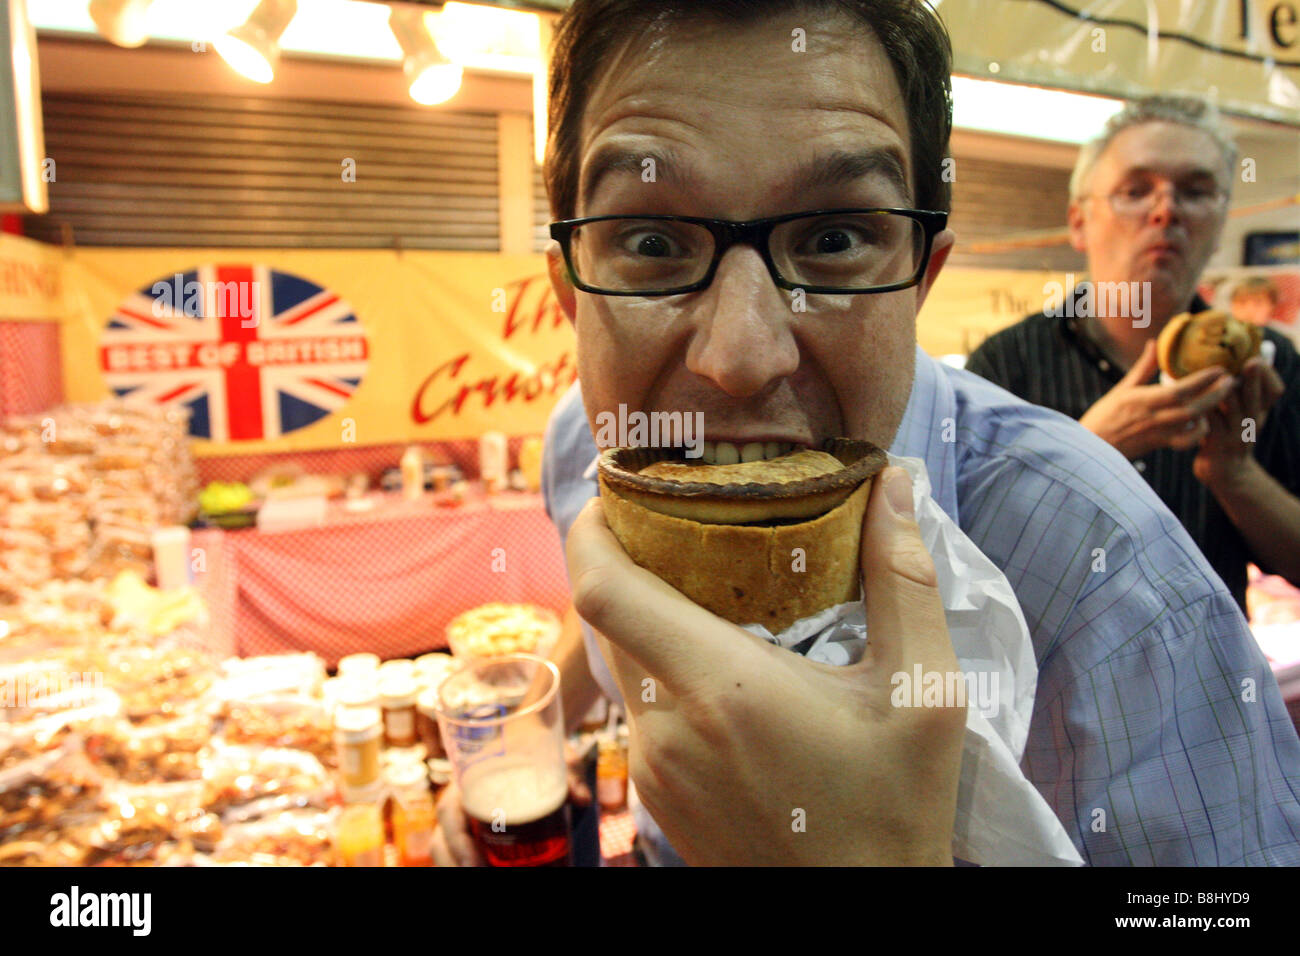 Biting in to pies at a British beer festival in Earls Court, London - Stock Image